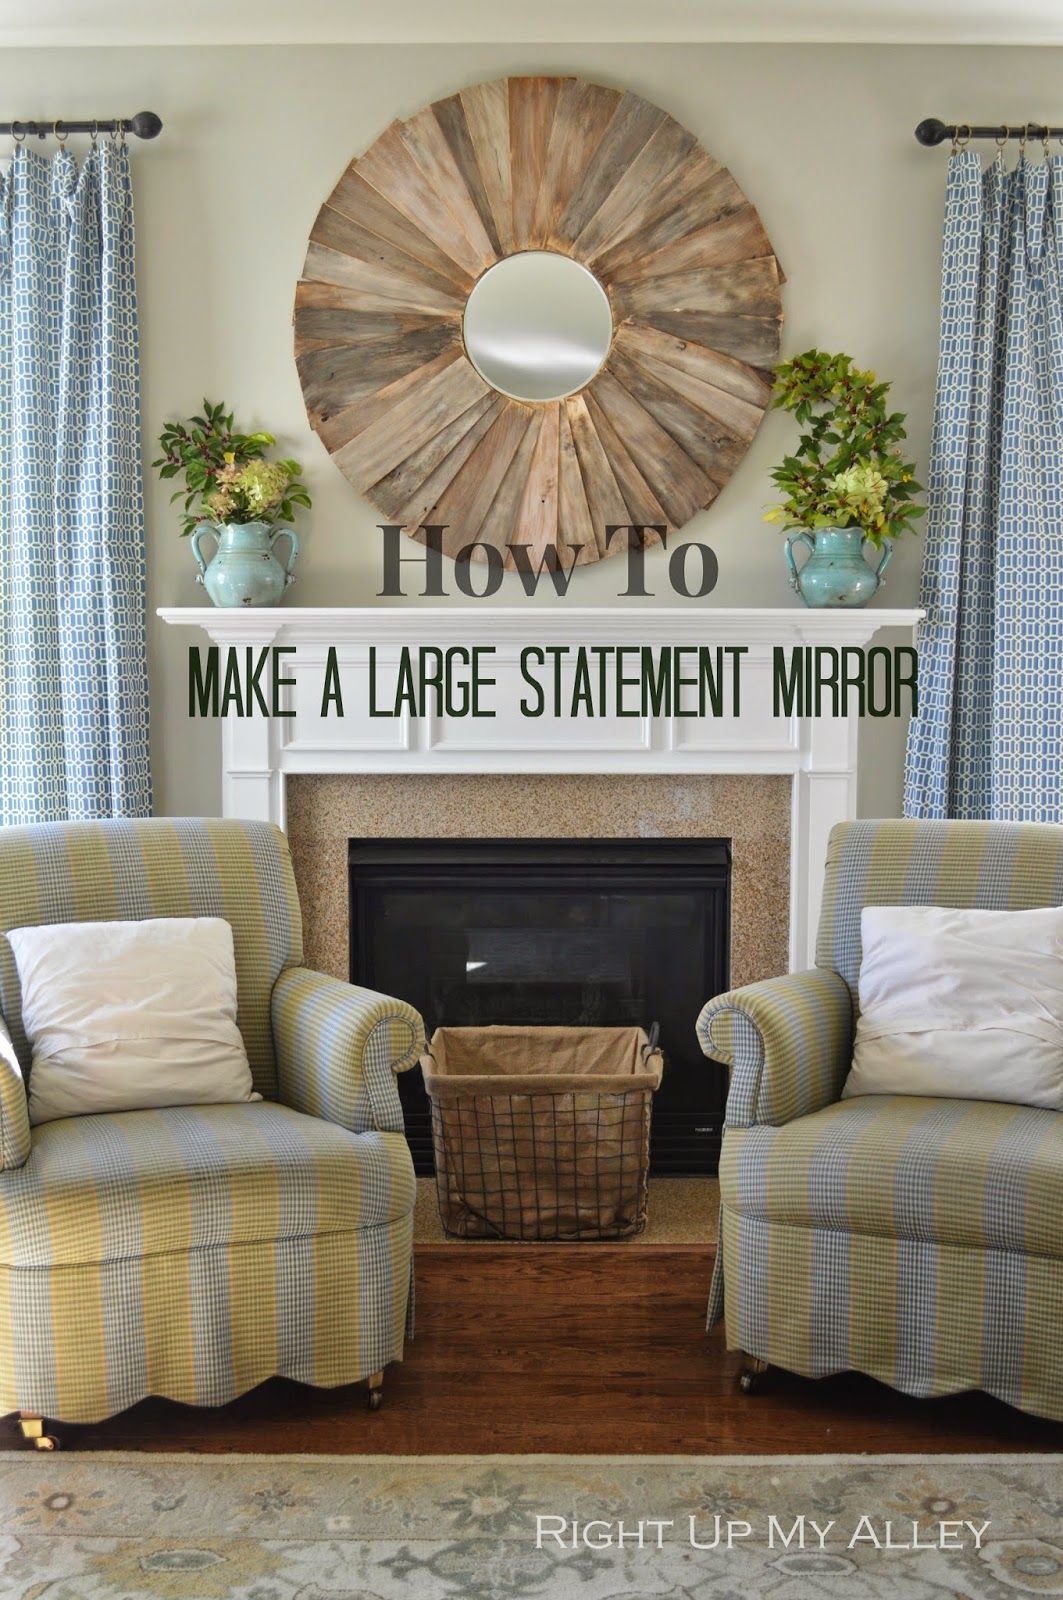 Right Up My Alley Diy Large Statement Mirror This Cost